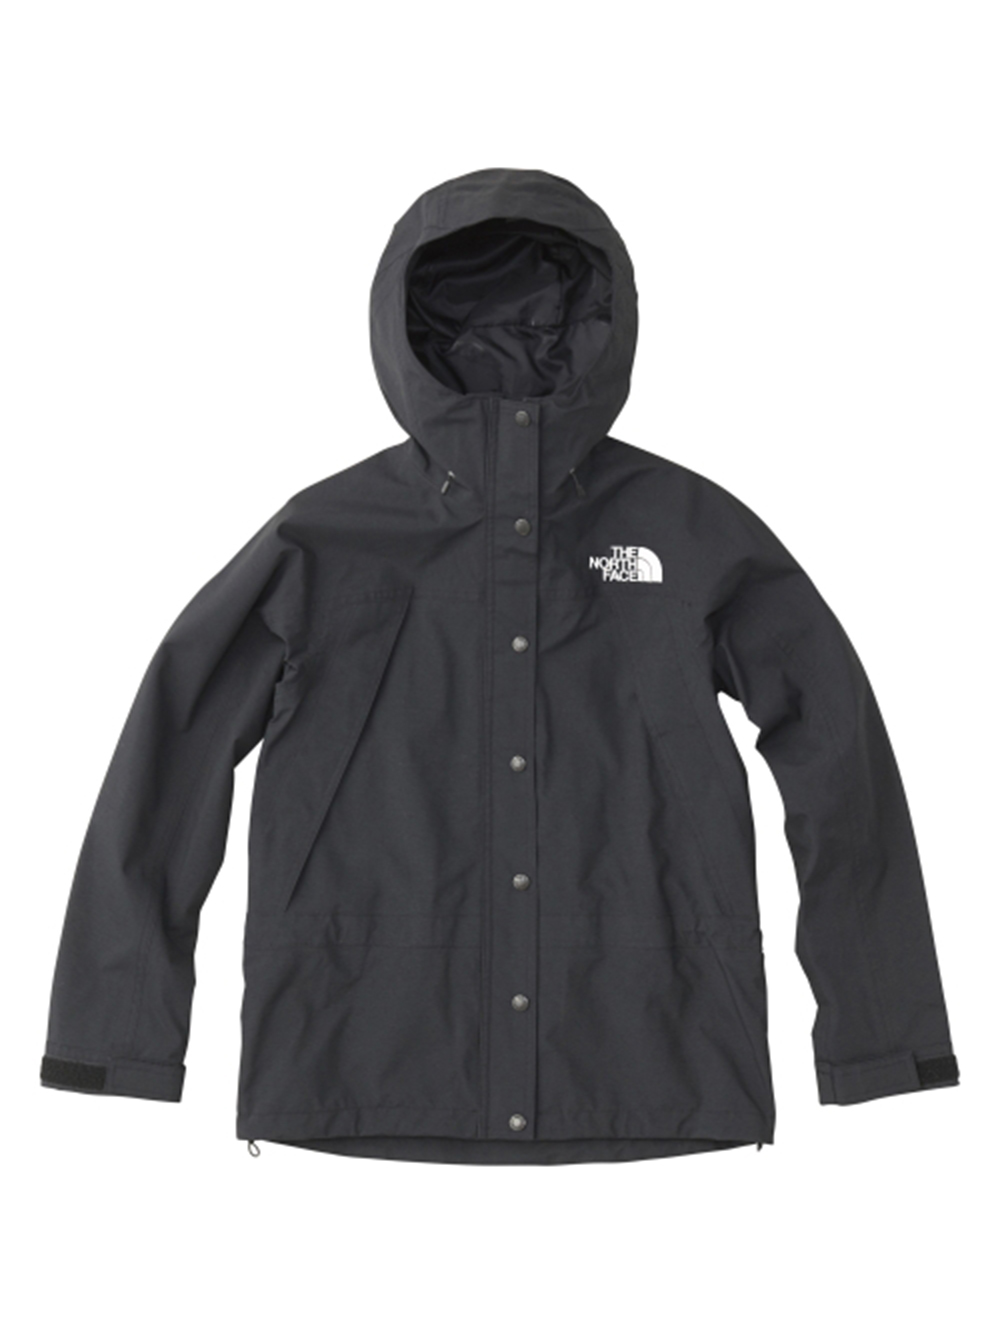 【THE NORTH FACE】Mountain Light Jacket(BLK-M)